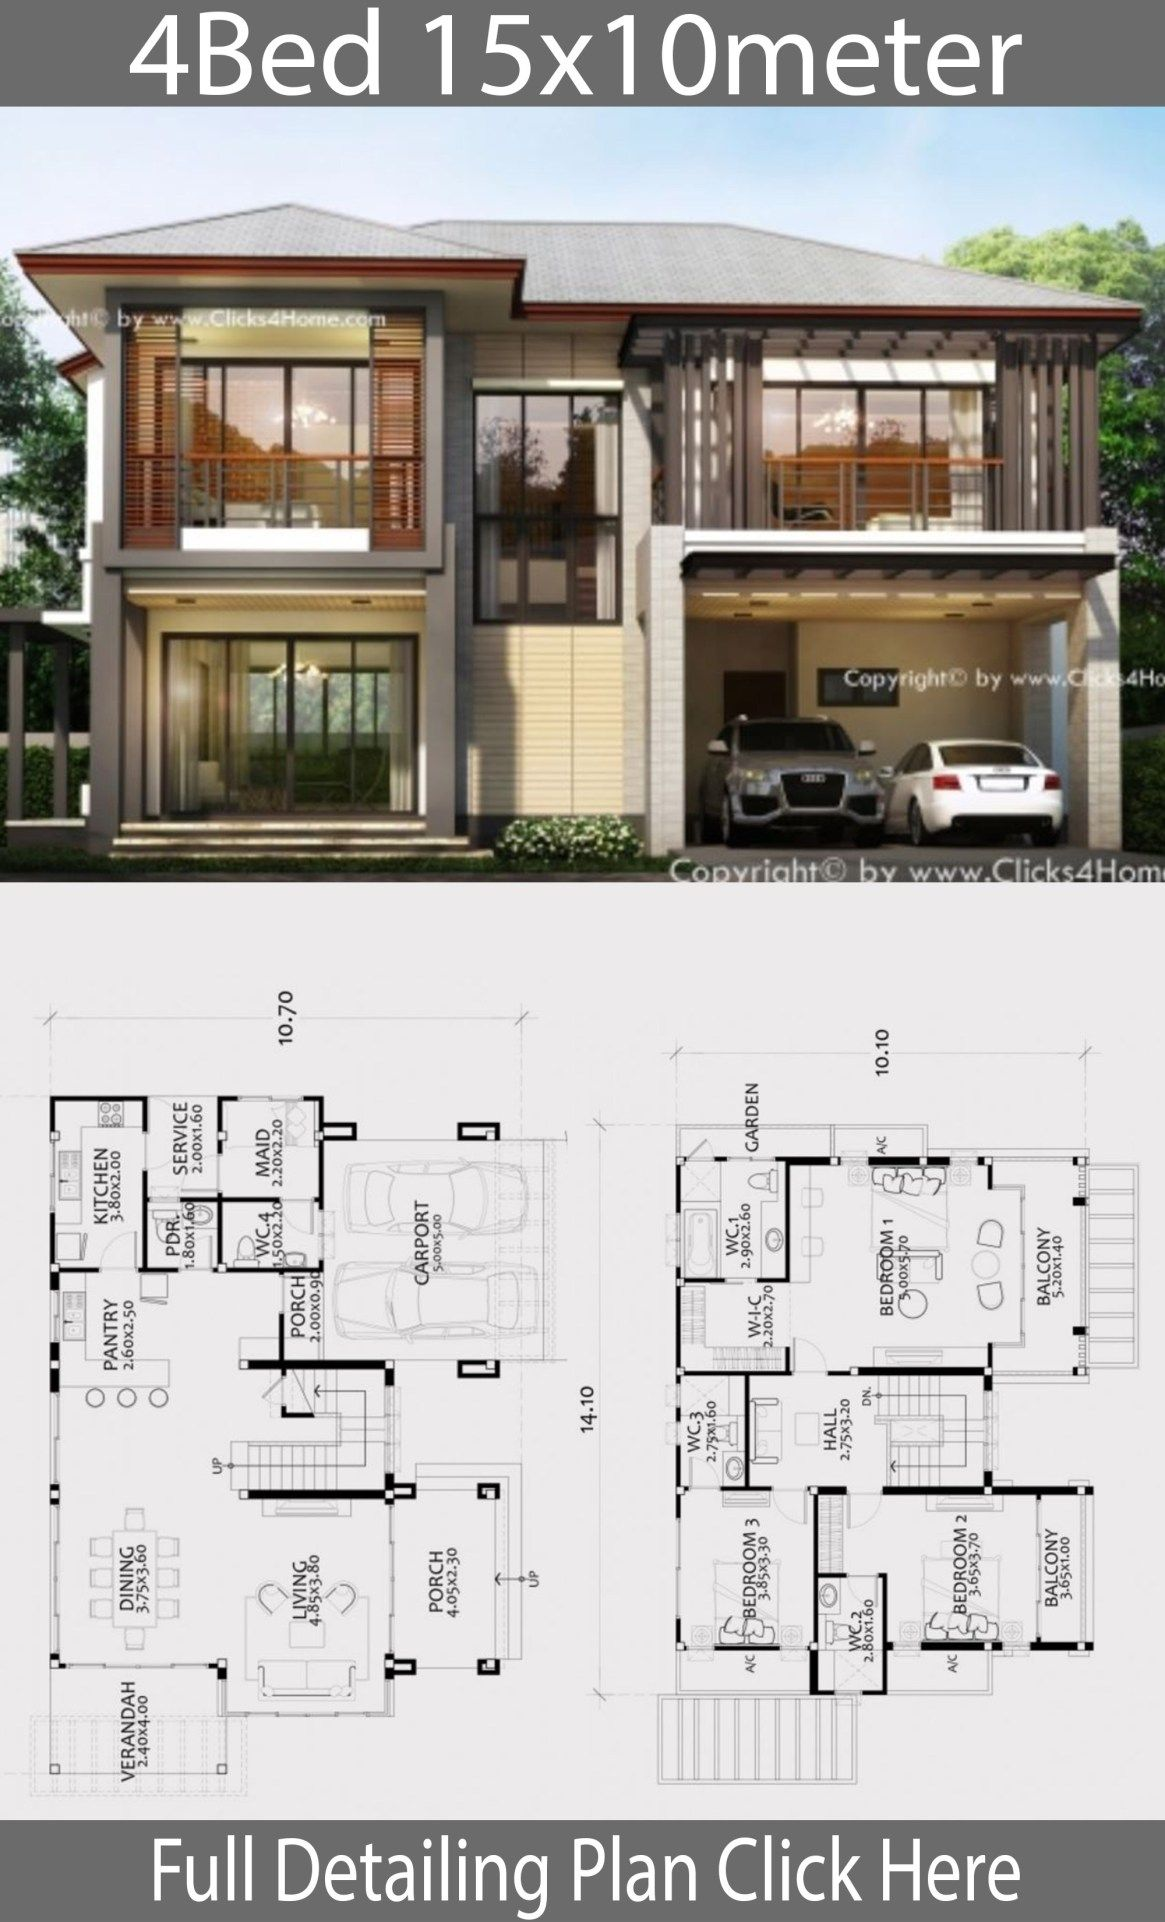 Home Design Plan 15x10m With 4 Bedrooms Home Design With Plansearch Architectural House Plans Home Building Design Modern House Plans